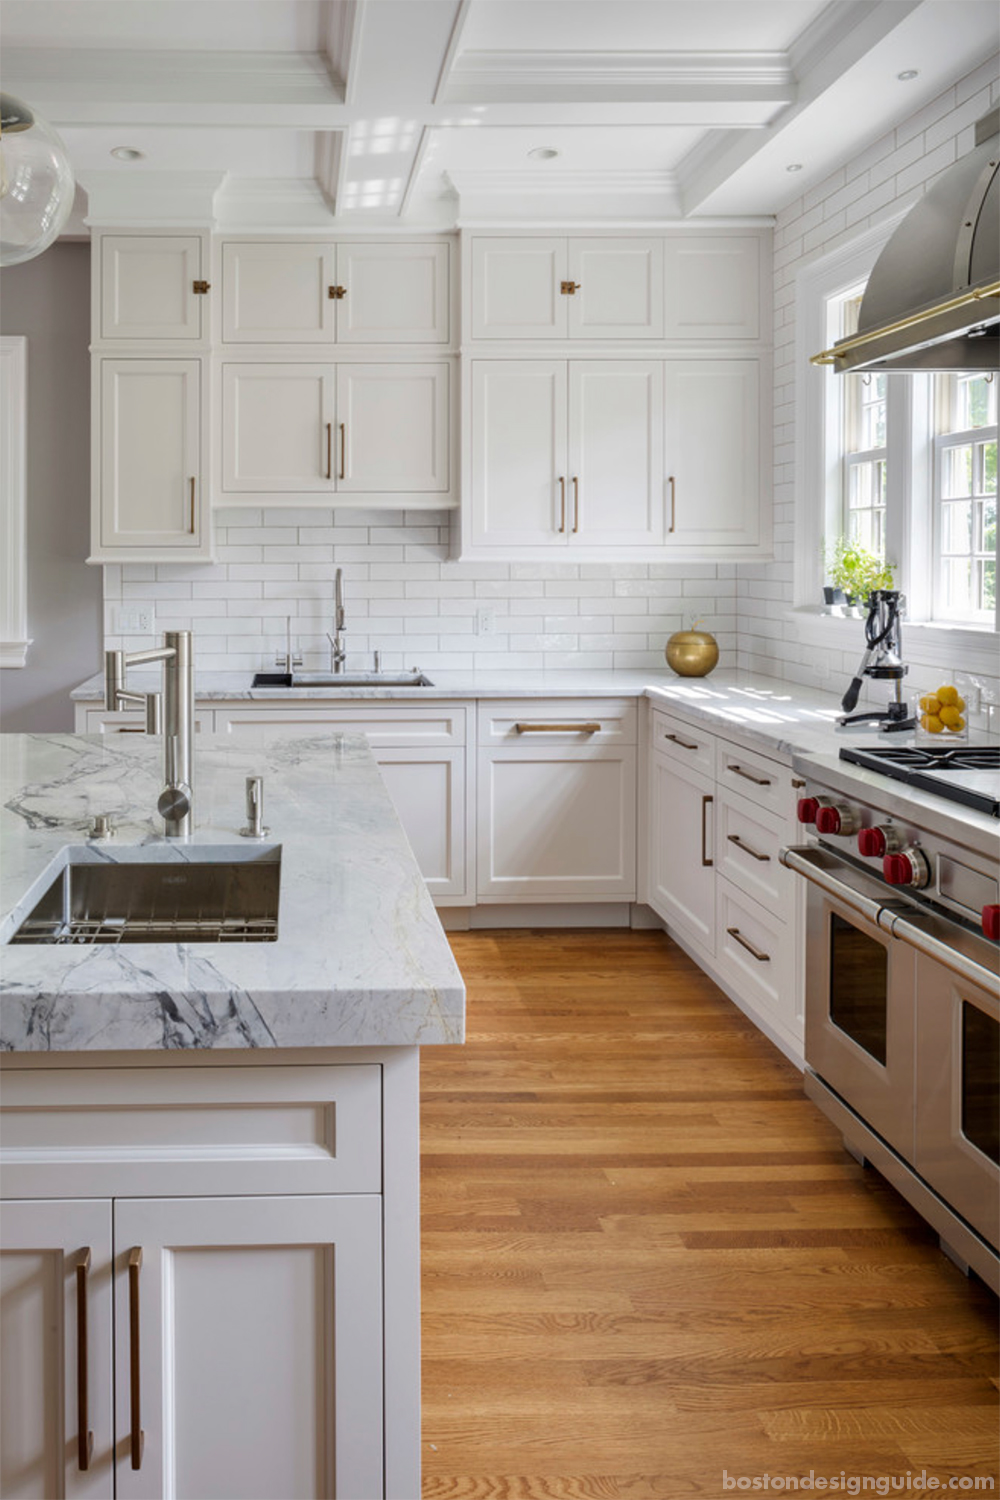 high-end home kitchen remodels in Boston